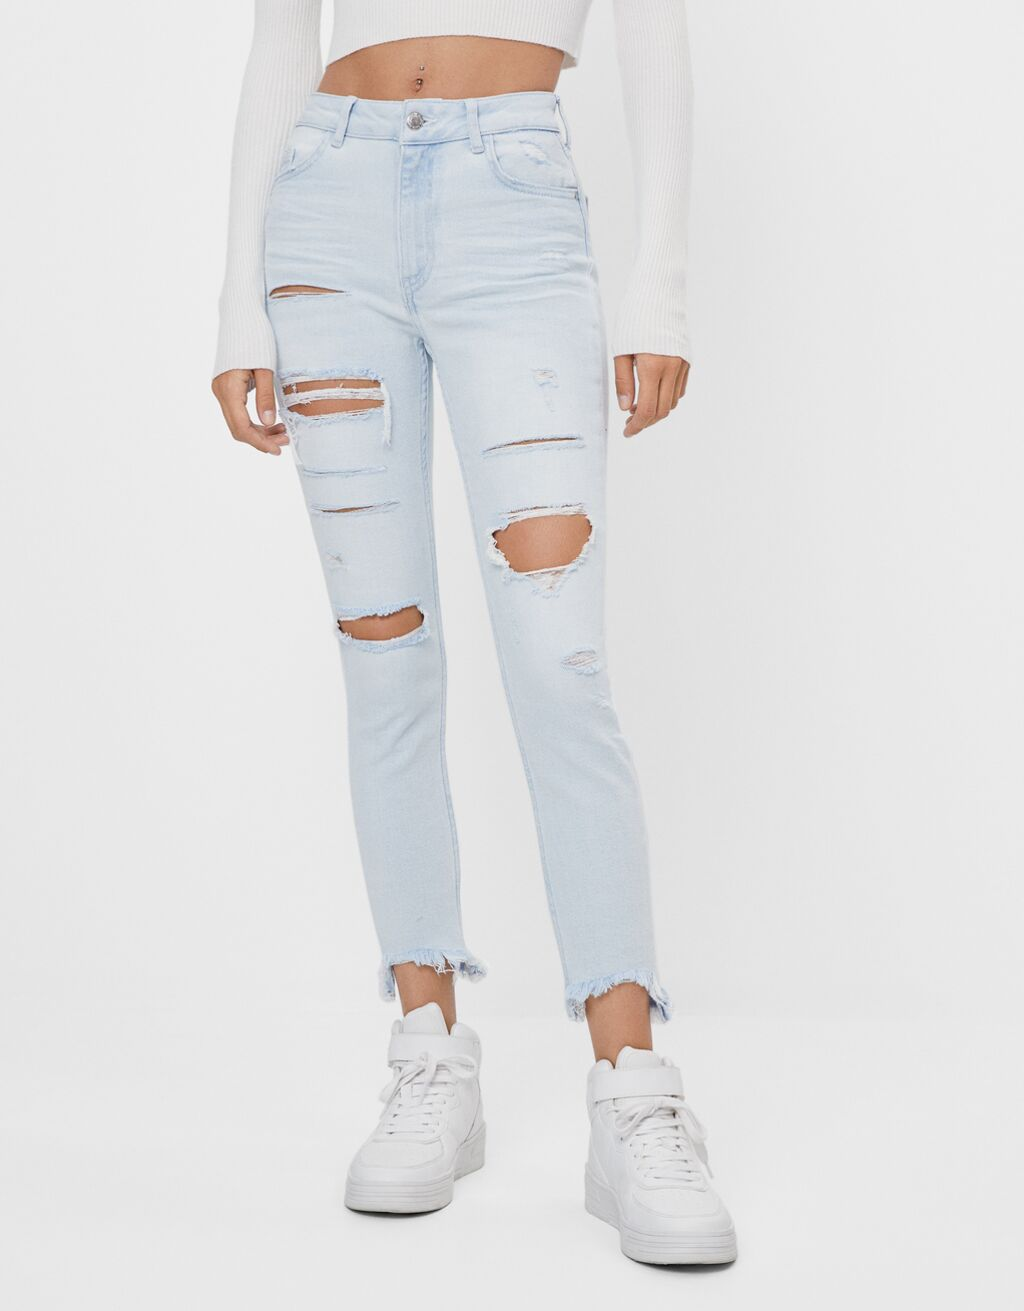 Low-rise ripped skinny jeans